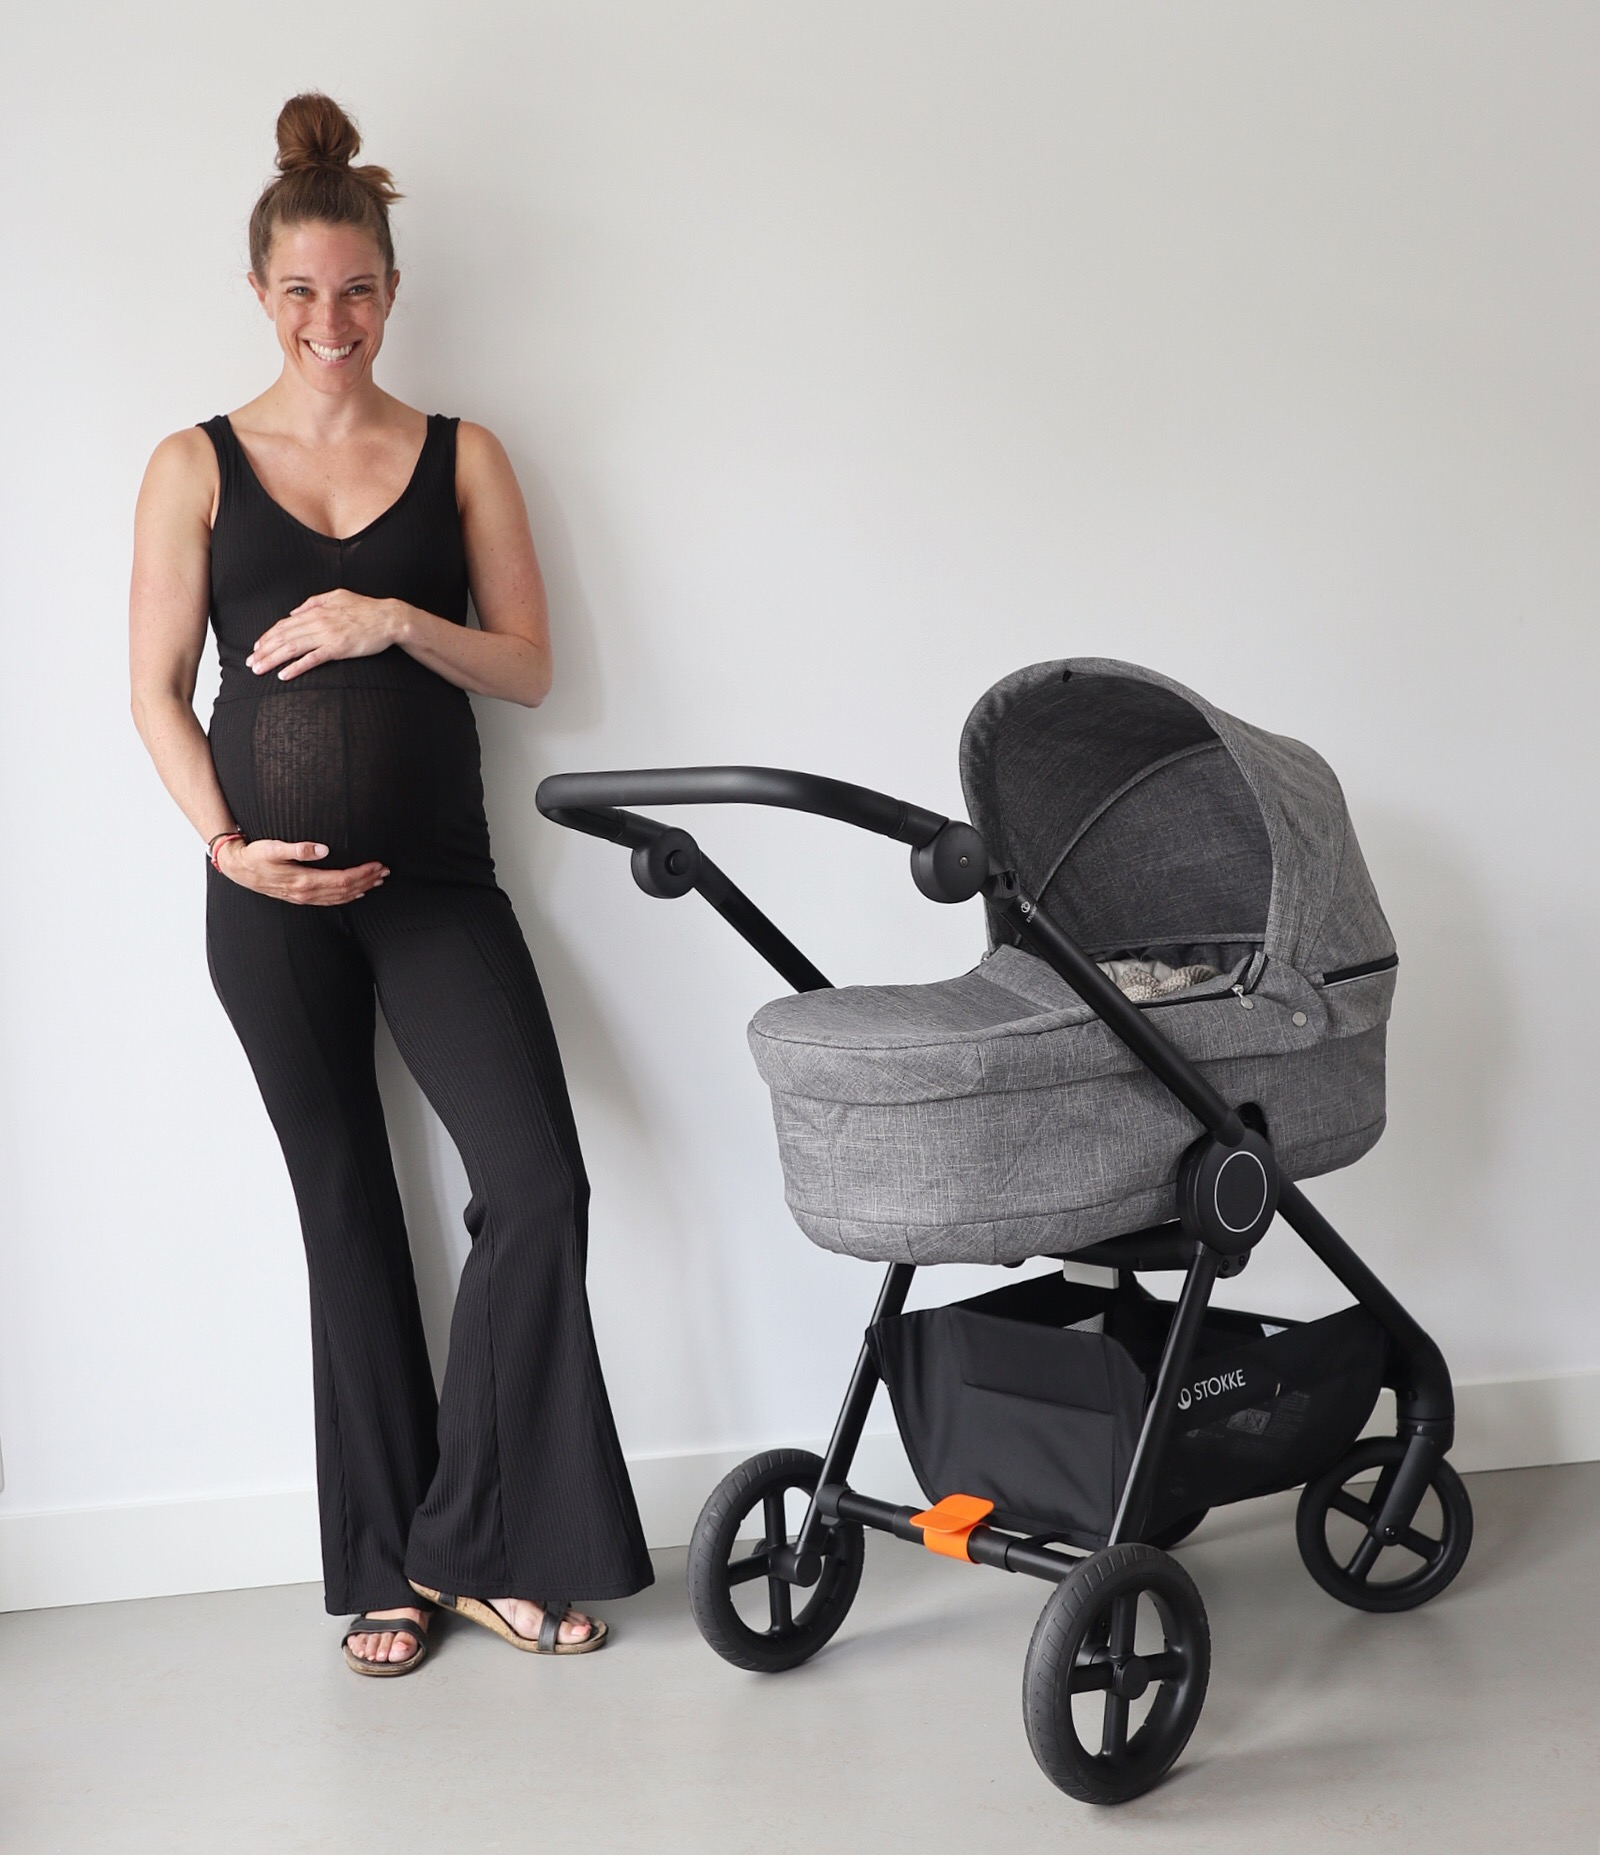 MOMspiration Stokke Beat kinderwagen